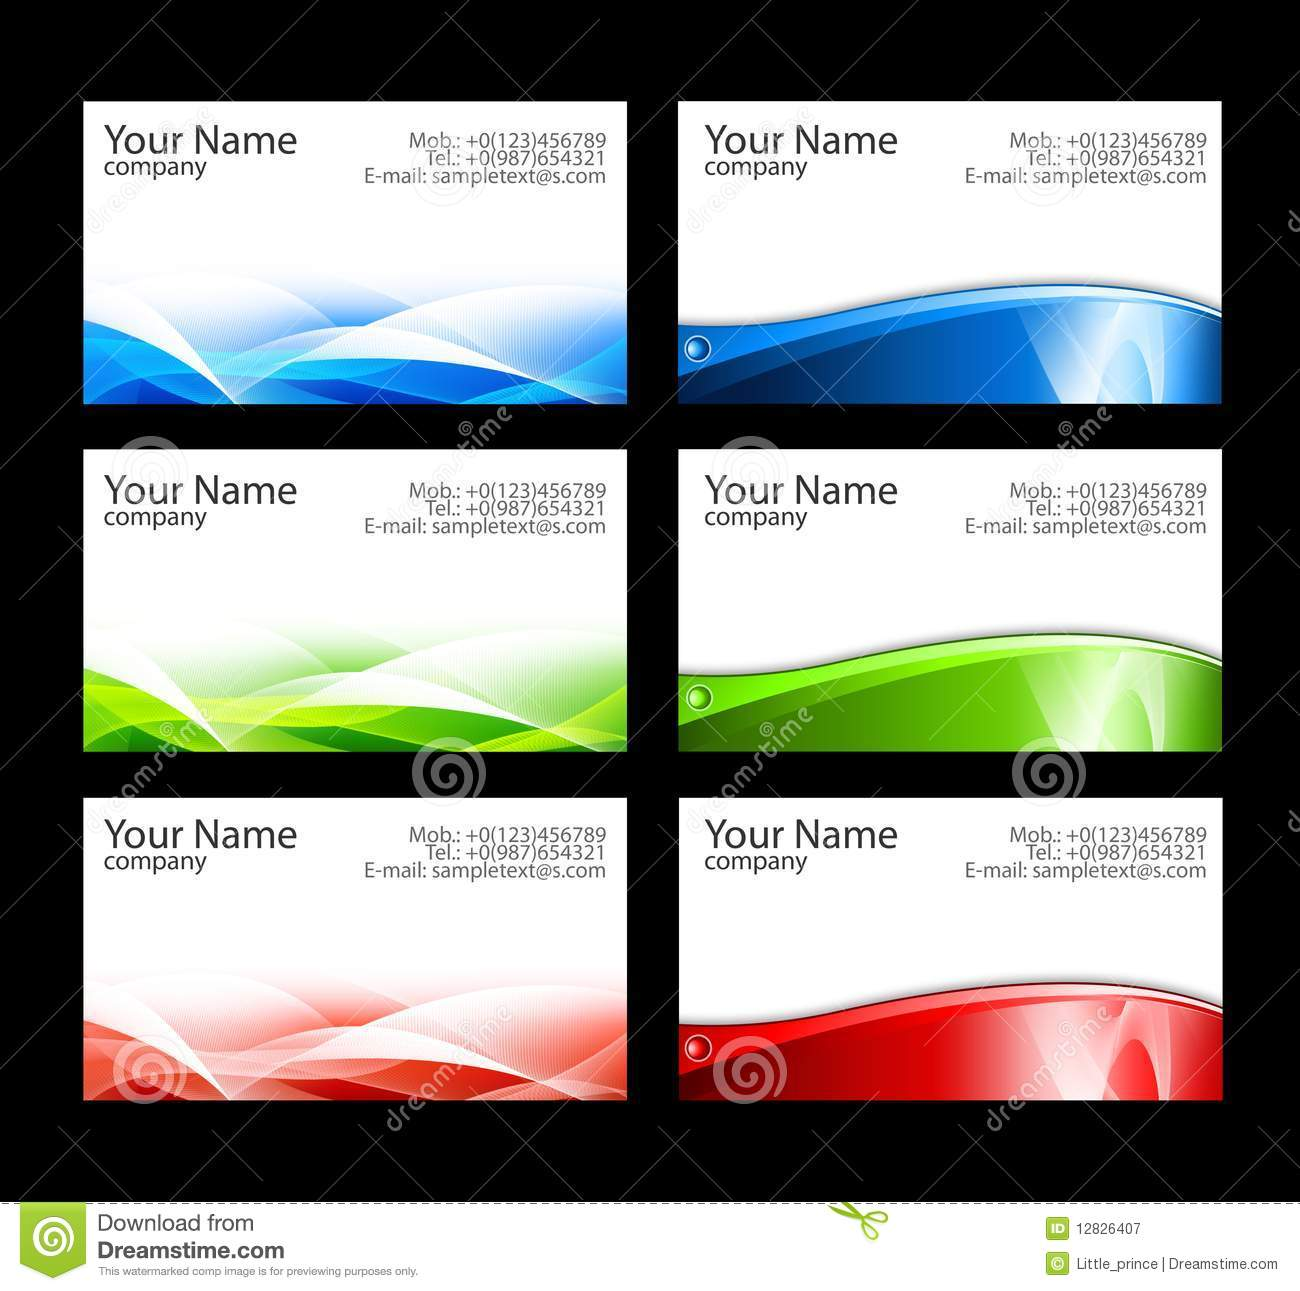 Free other design file page 21 newdesignfile 15 free avery business card templates images fbccfo